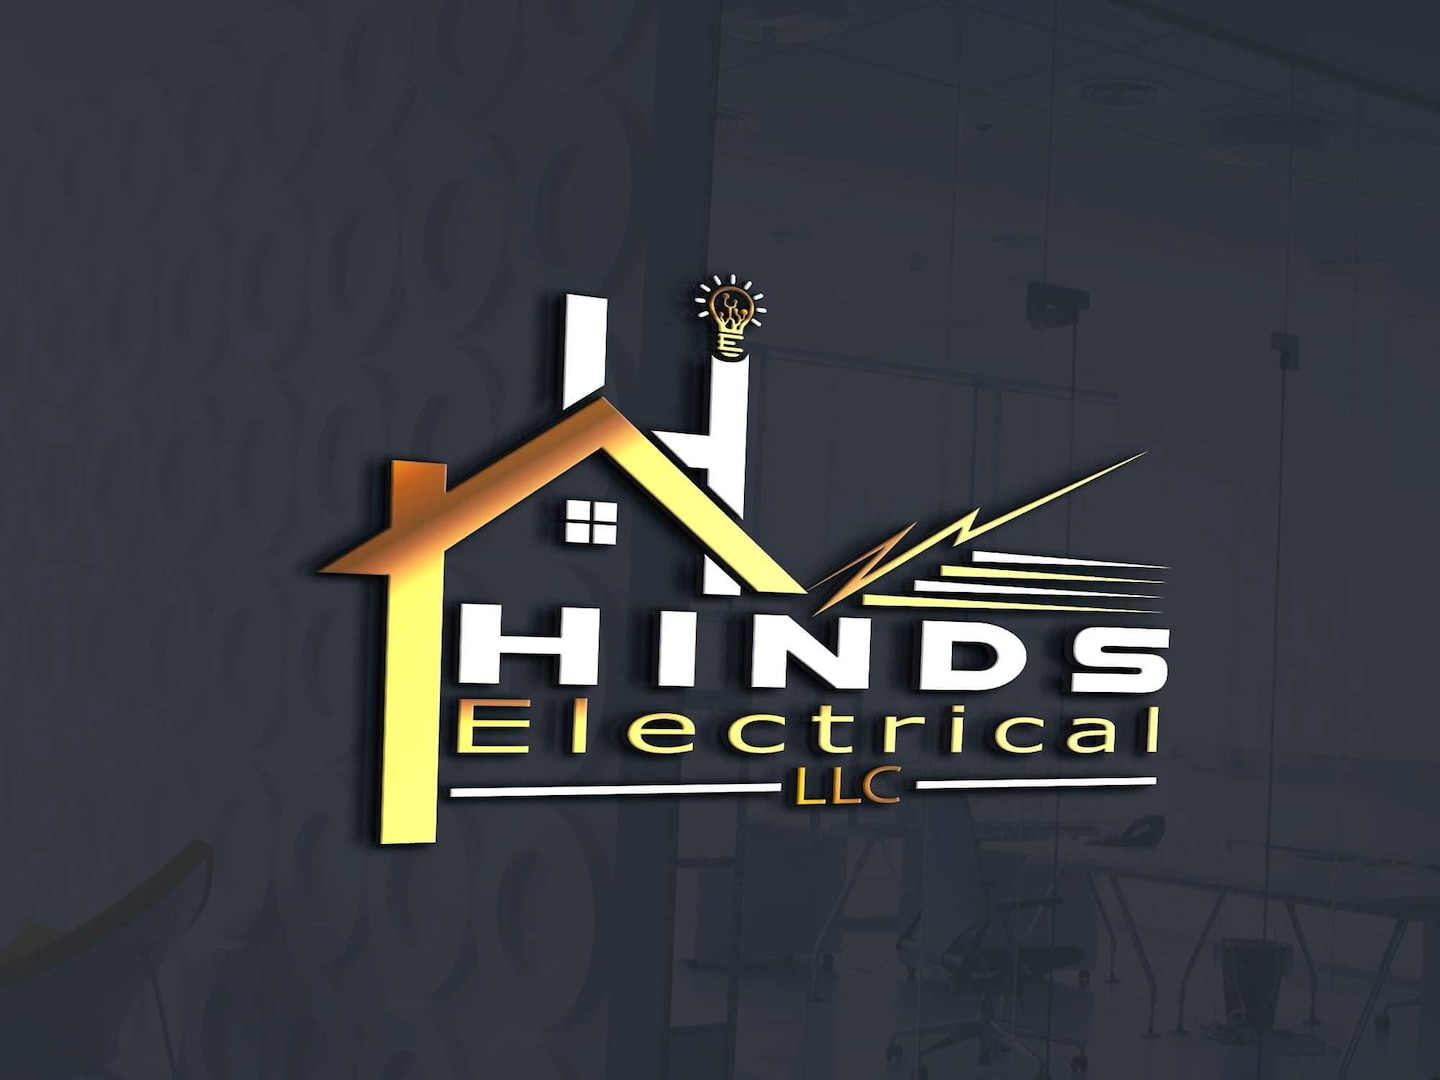 Hinds Electrical, LLC